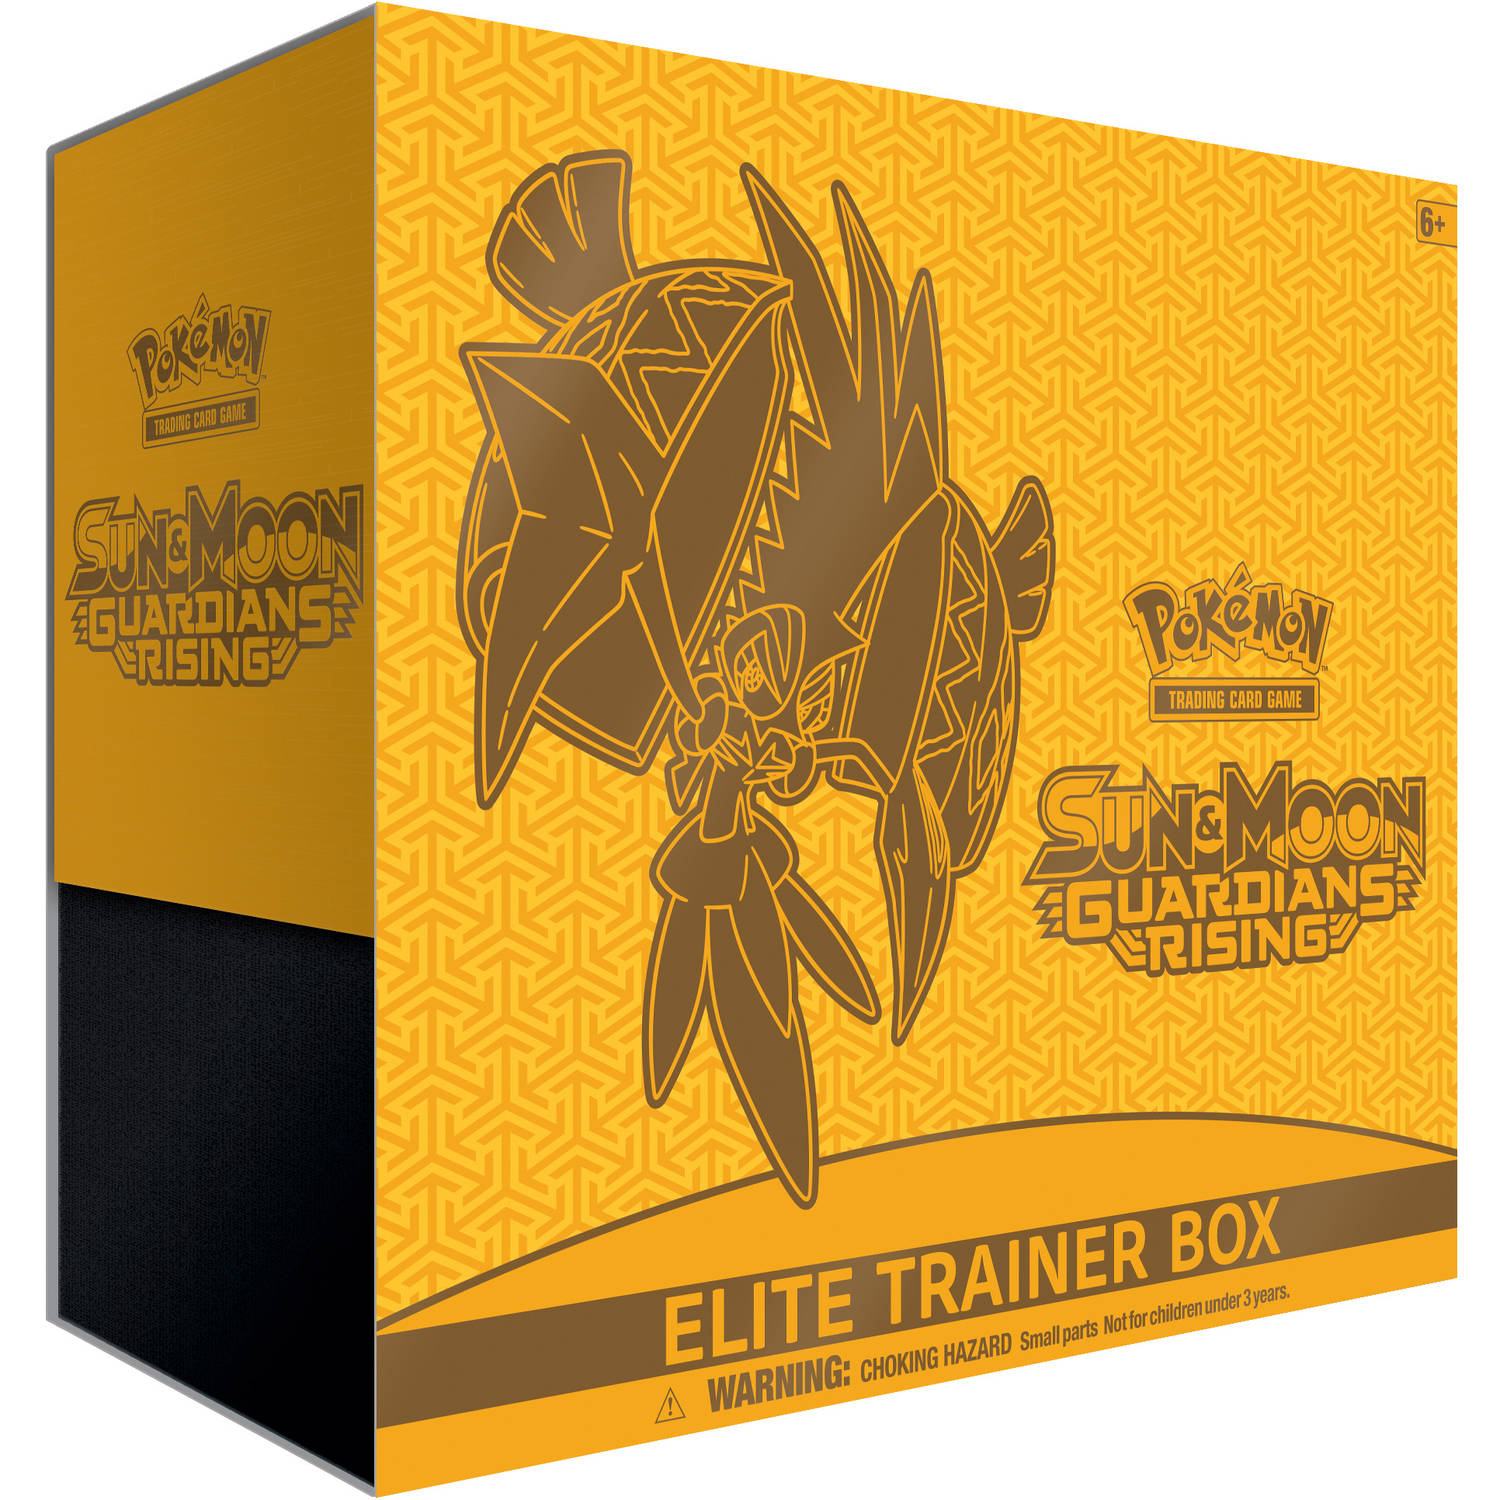 Pokemon Sun and Moon: Guardians Rising Elite Trainer Box by Pokemon